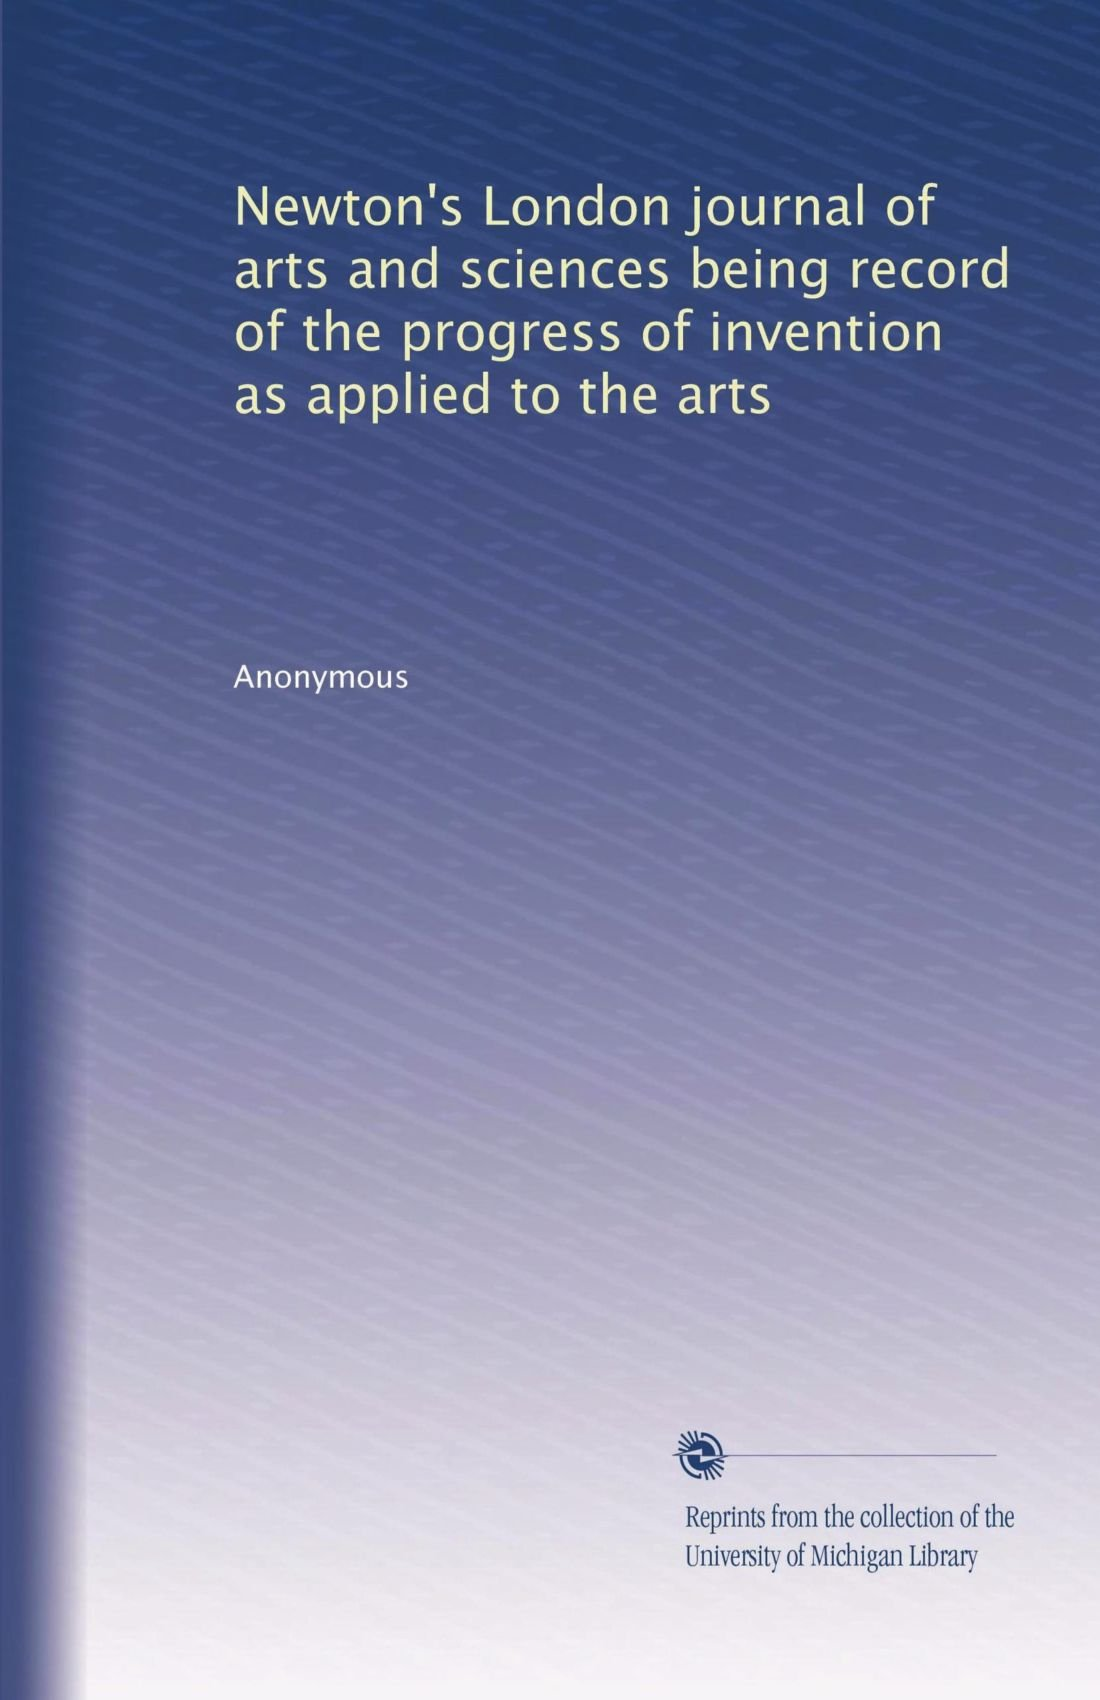 Newton's London journal of arts and sciences being record of the progress of invention as applied to the arts (Volume 65) PDF